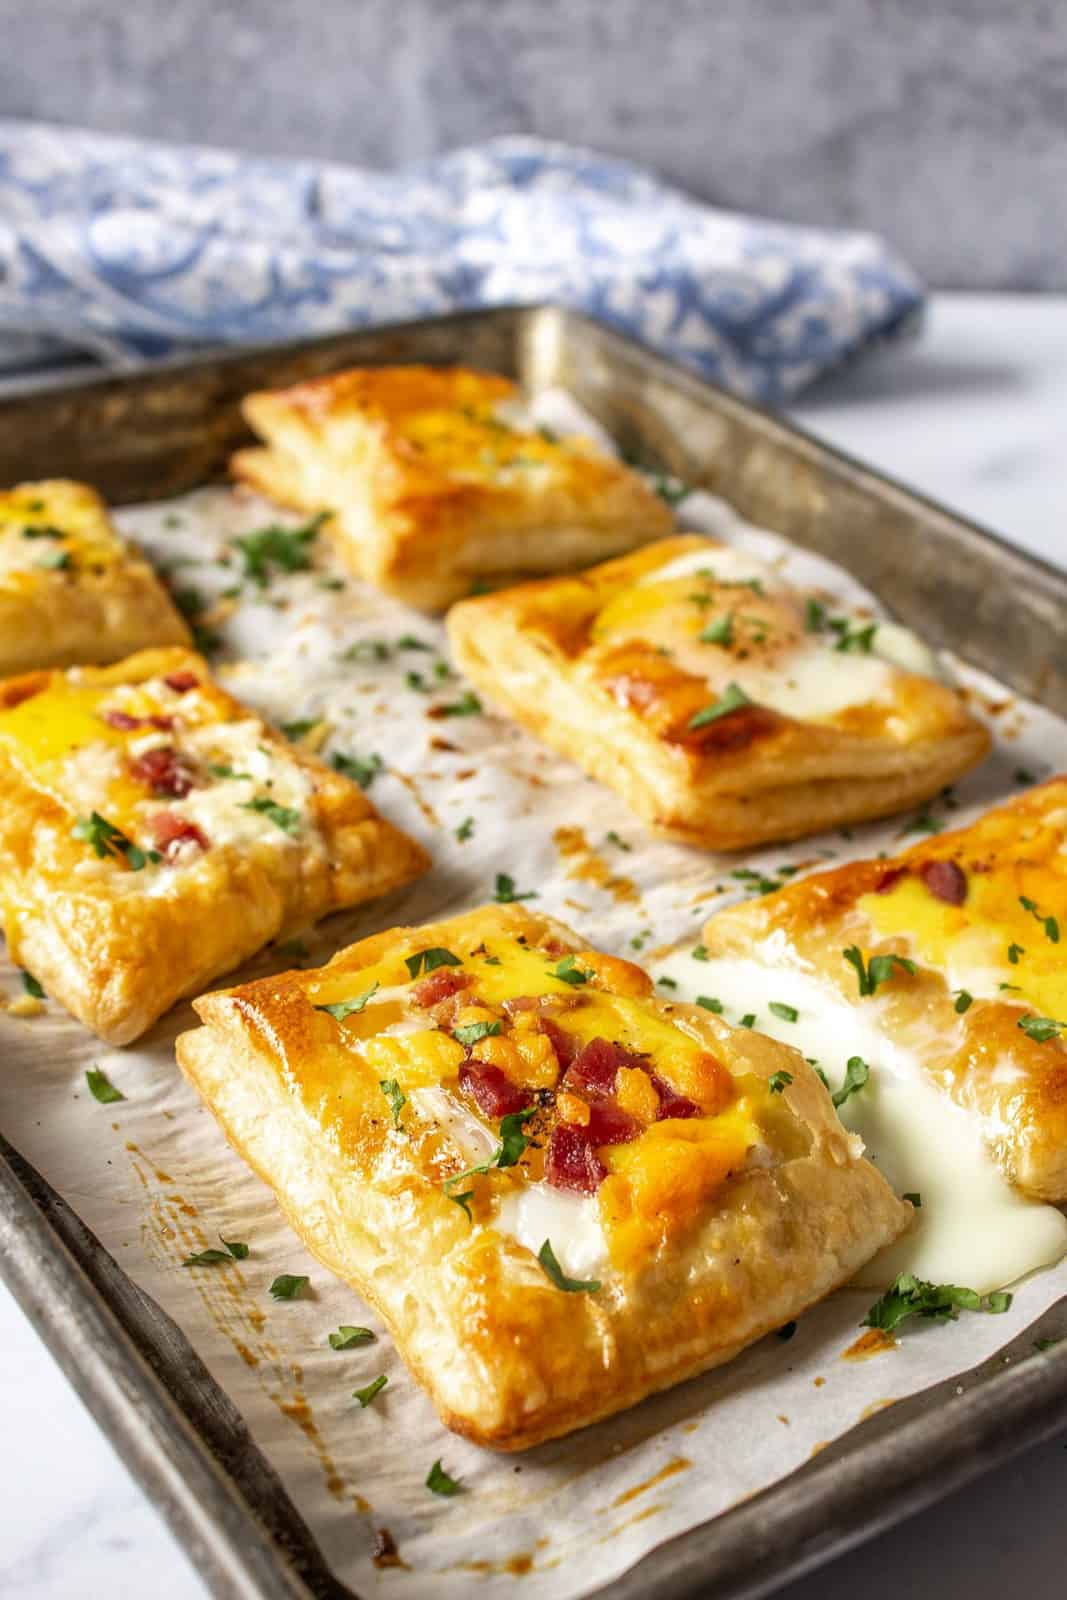 A baking sheet with puff pastry topped with baked eggs.